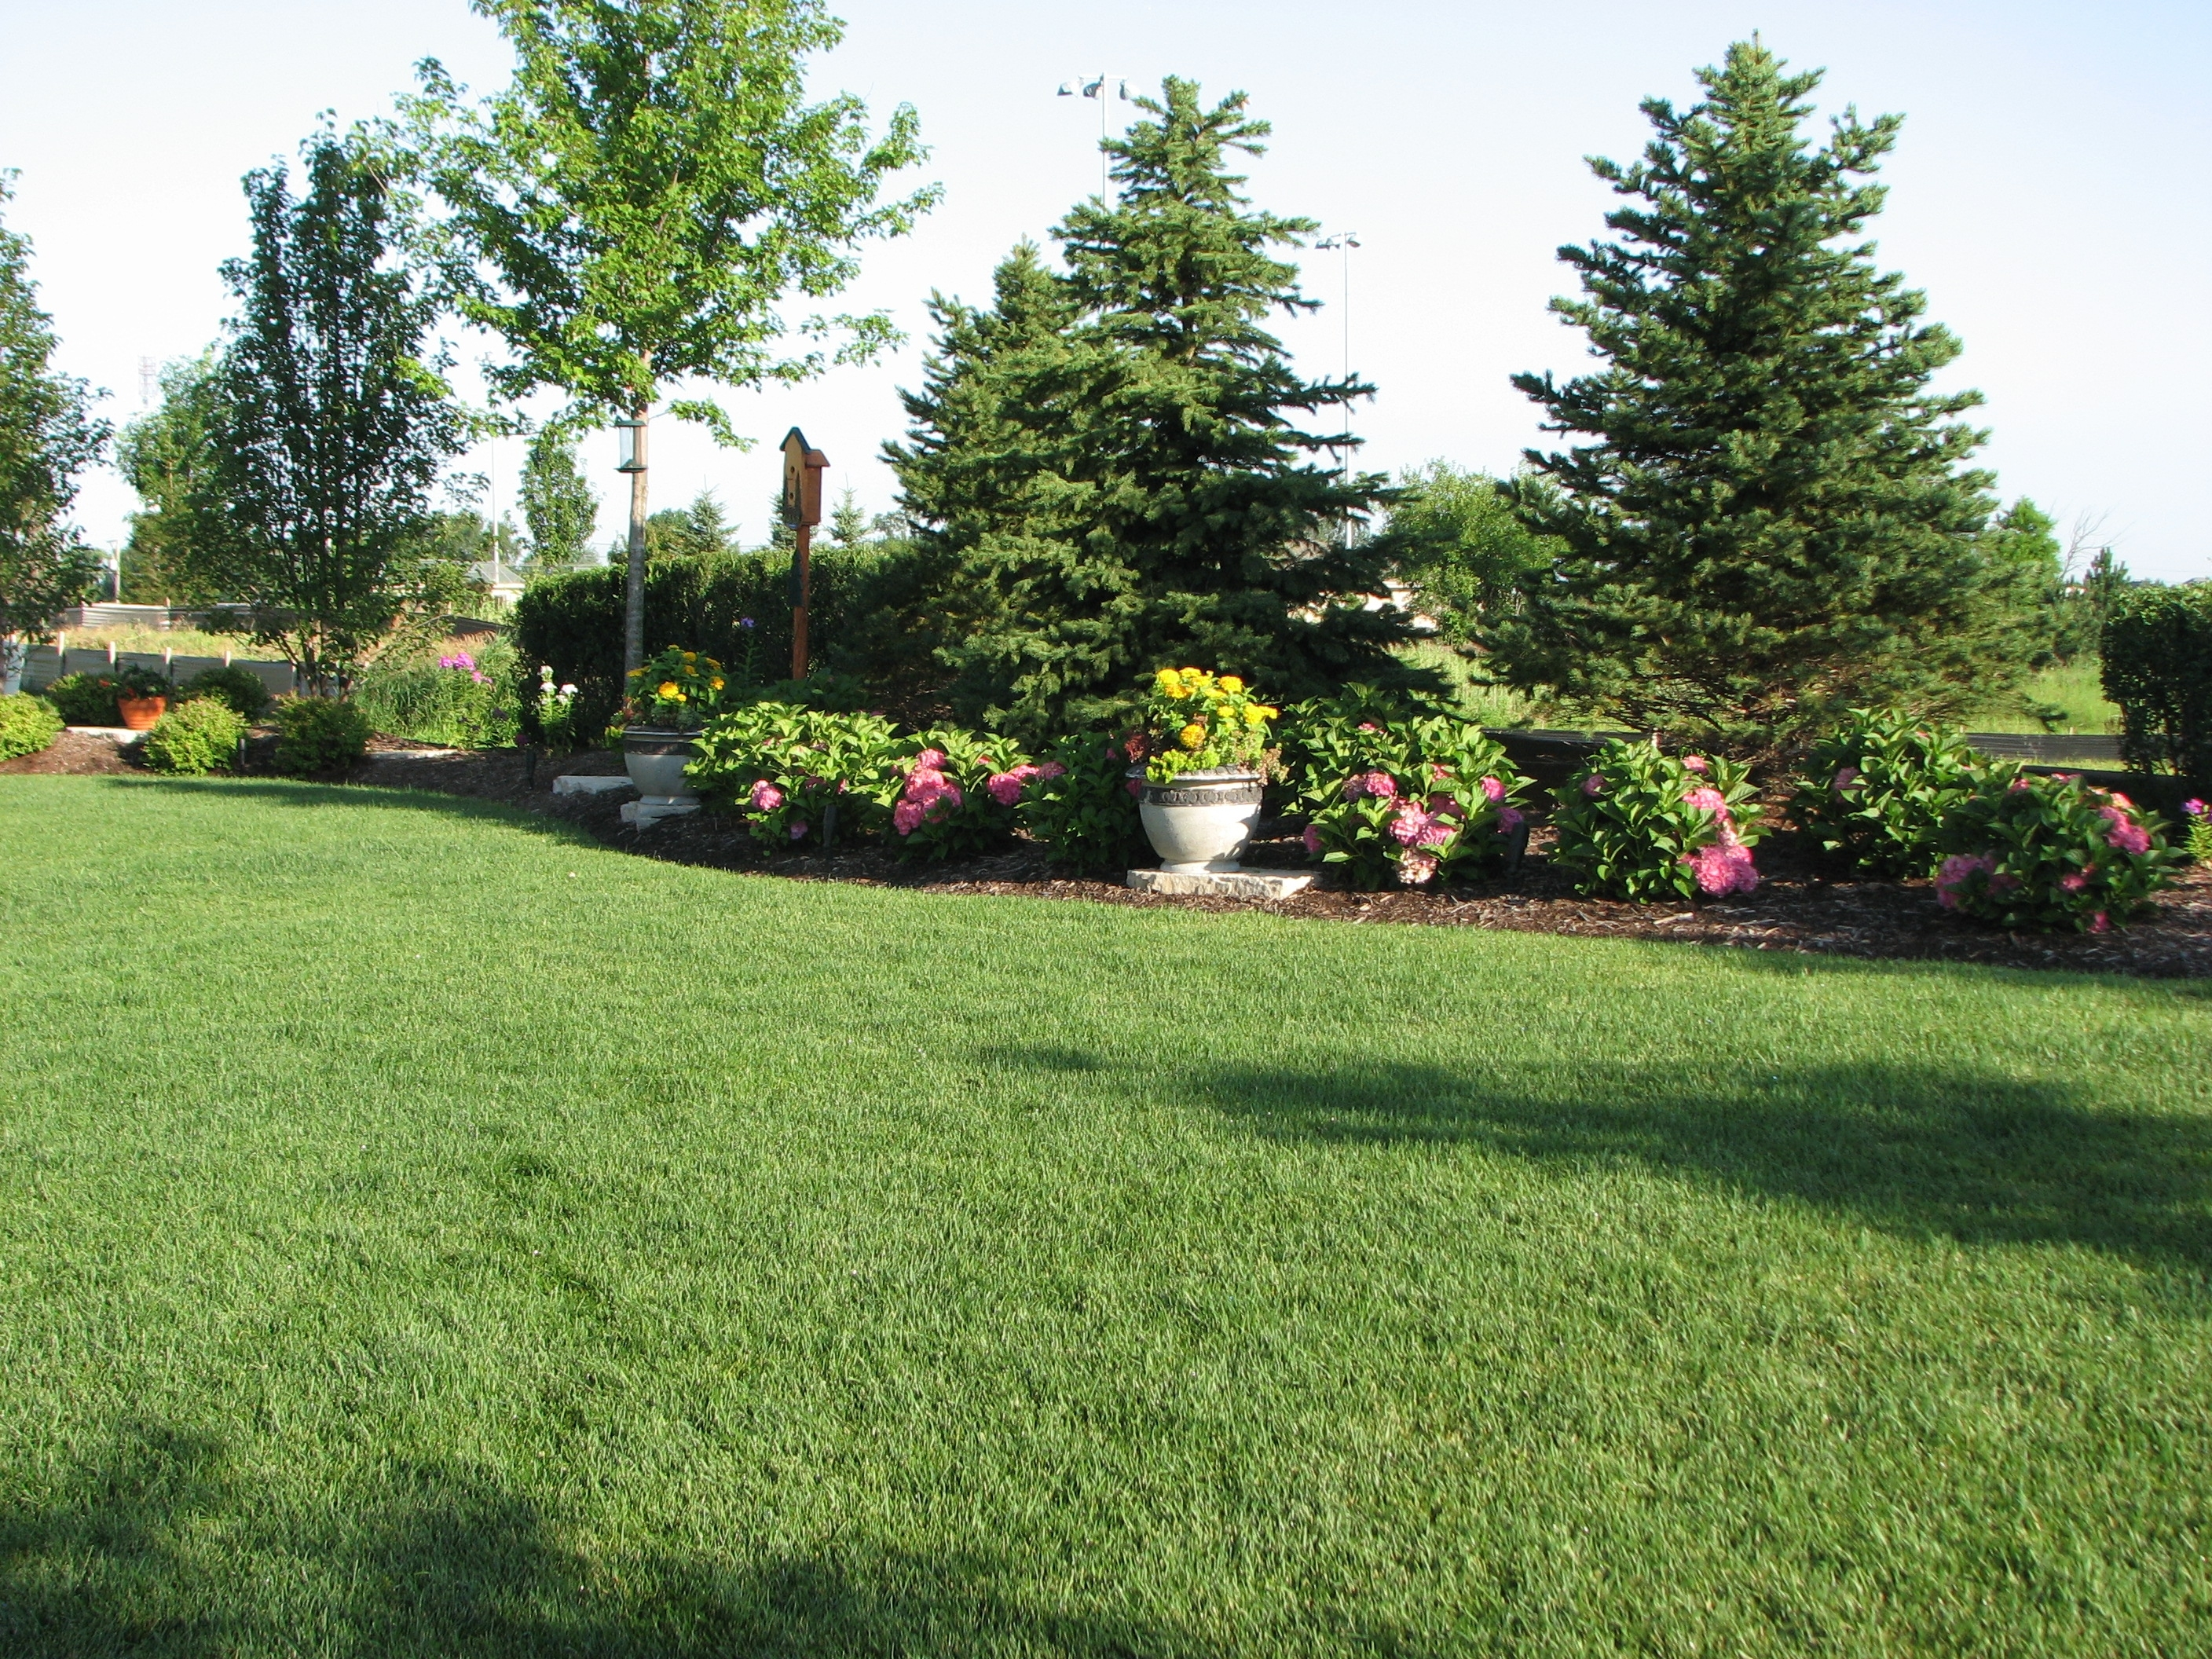 Florida Landscaping Ideas For Privacy In A Small Backyard within Backyard Garden Ideas For Privacy